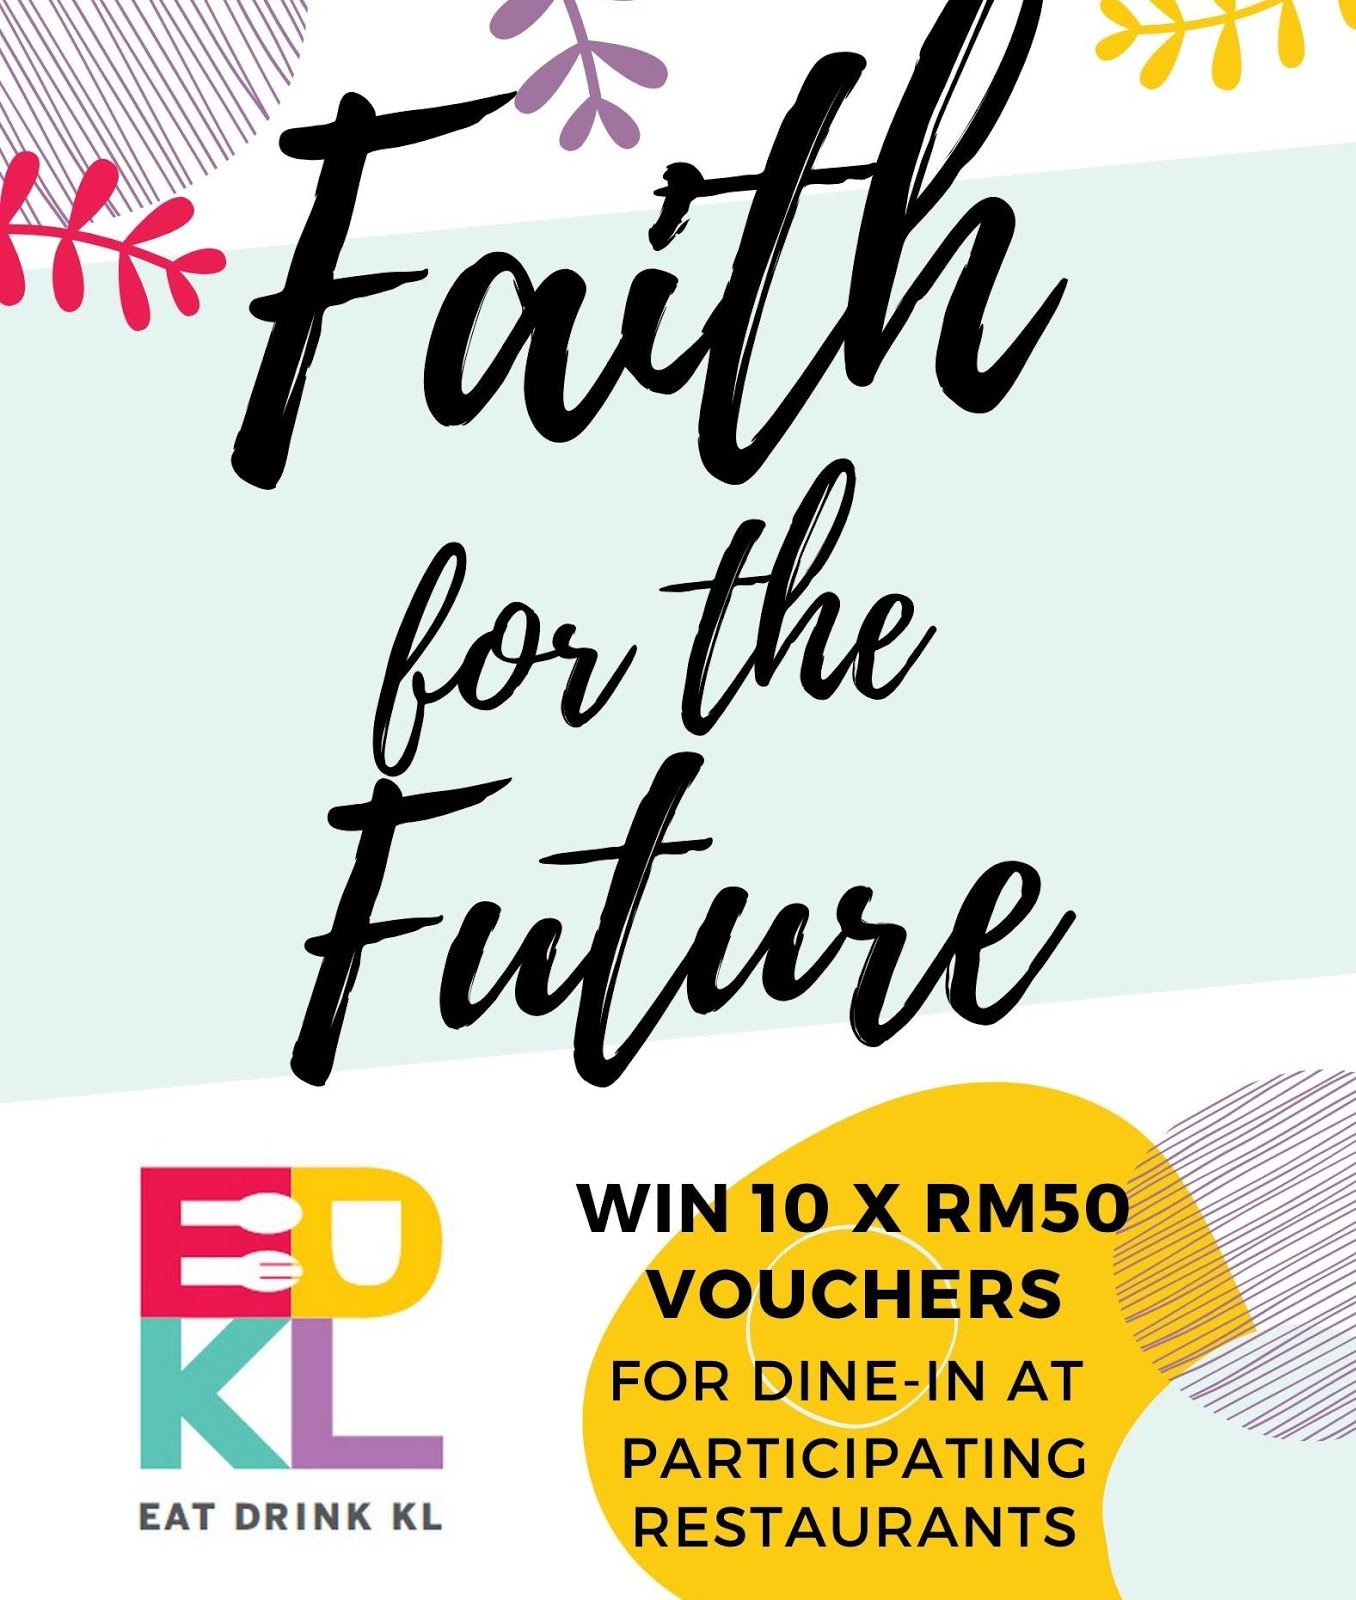 edkl faith for the future: win 10 x rm50 dining vouchers